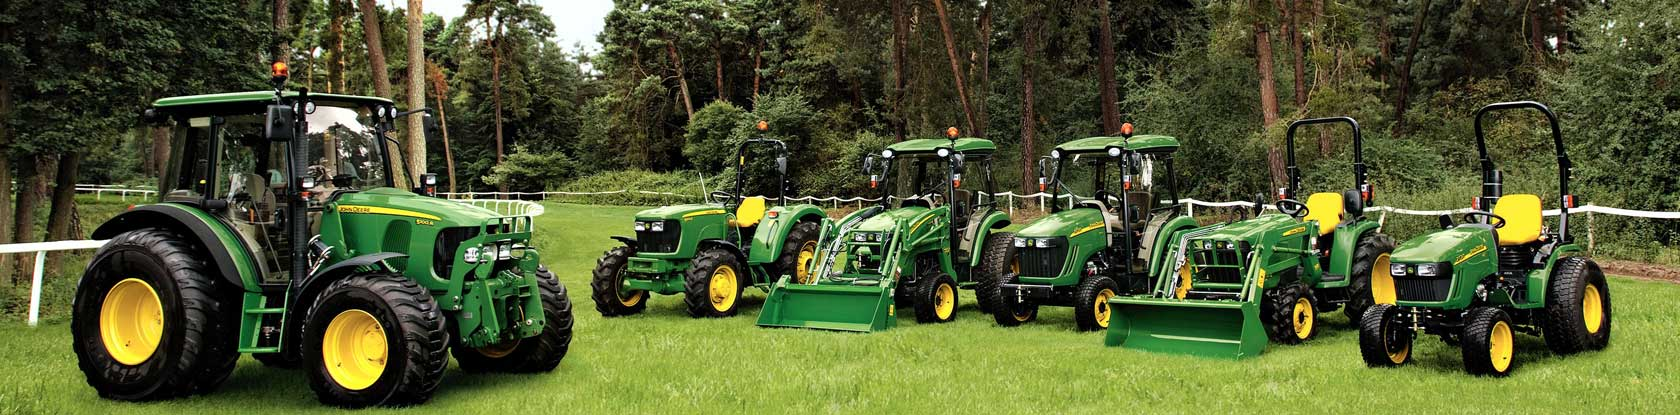 Small Tractor Implements For Gardening : New john deere garden tractors and compact utility